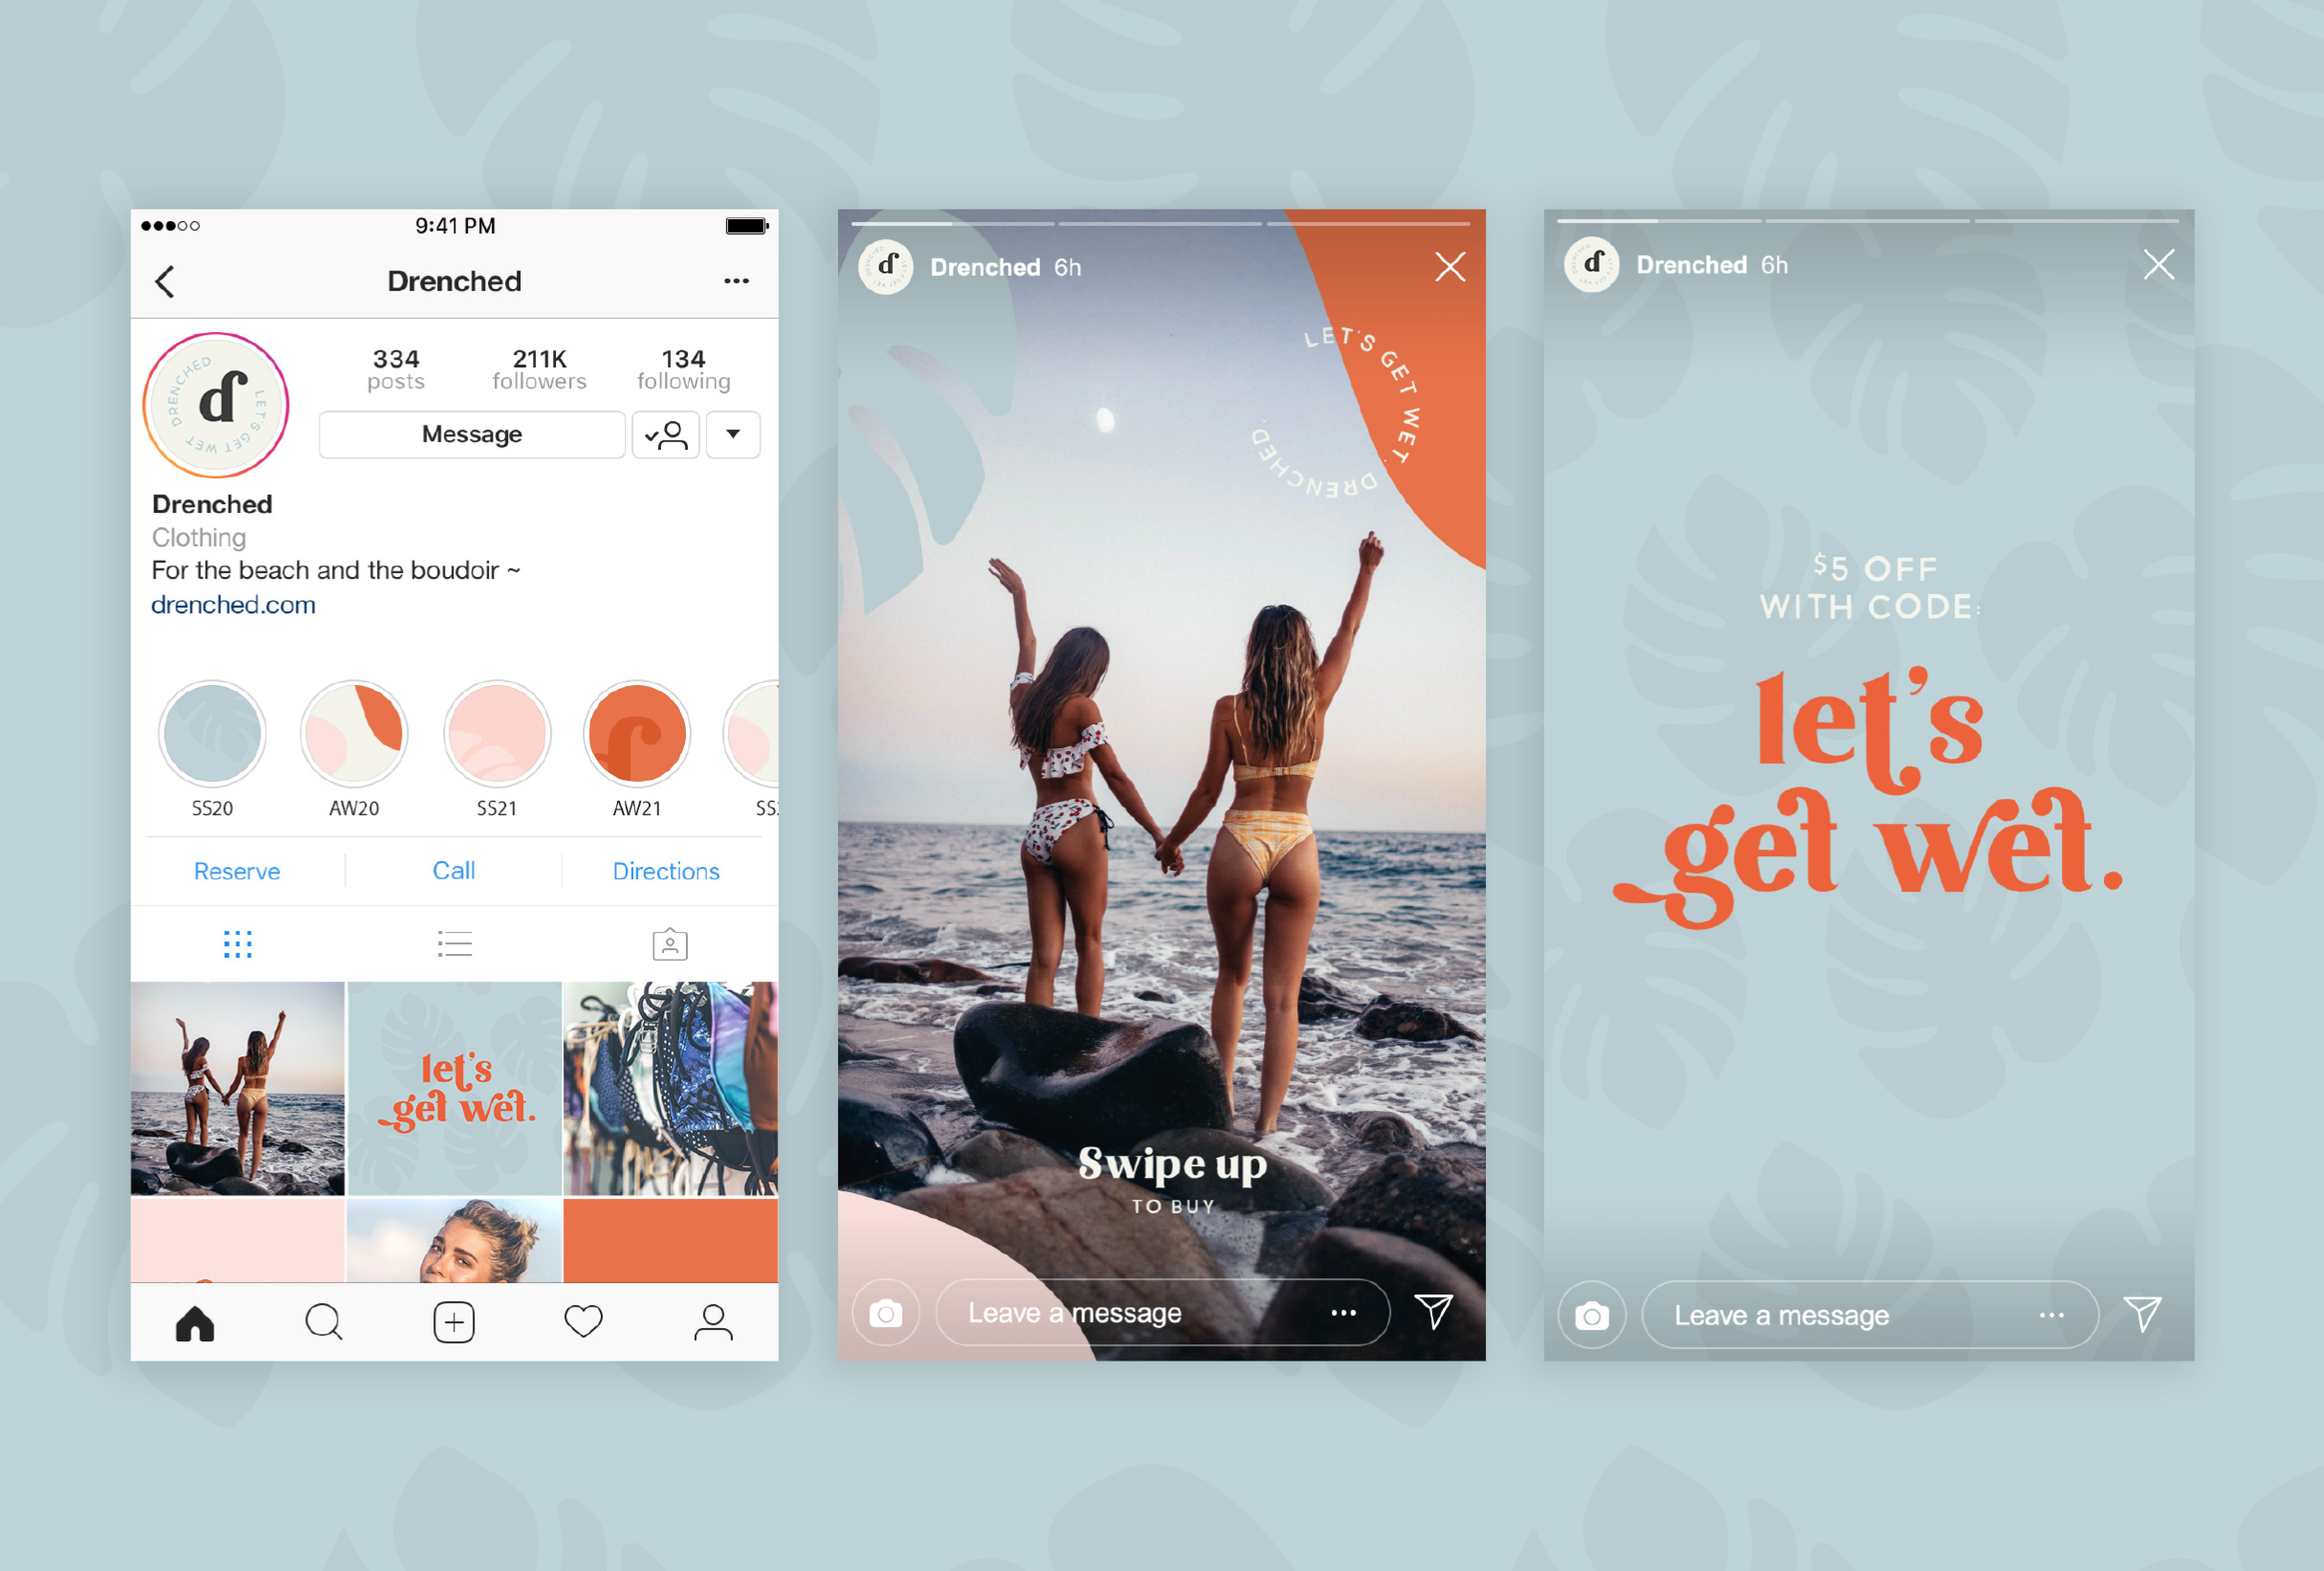 Instagram mock-up for Drenched, selling luxury products that are essential for water-based needs - designed by Wiltshire-based graphic designer, Kaye Huett